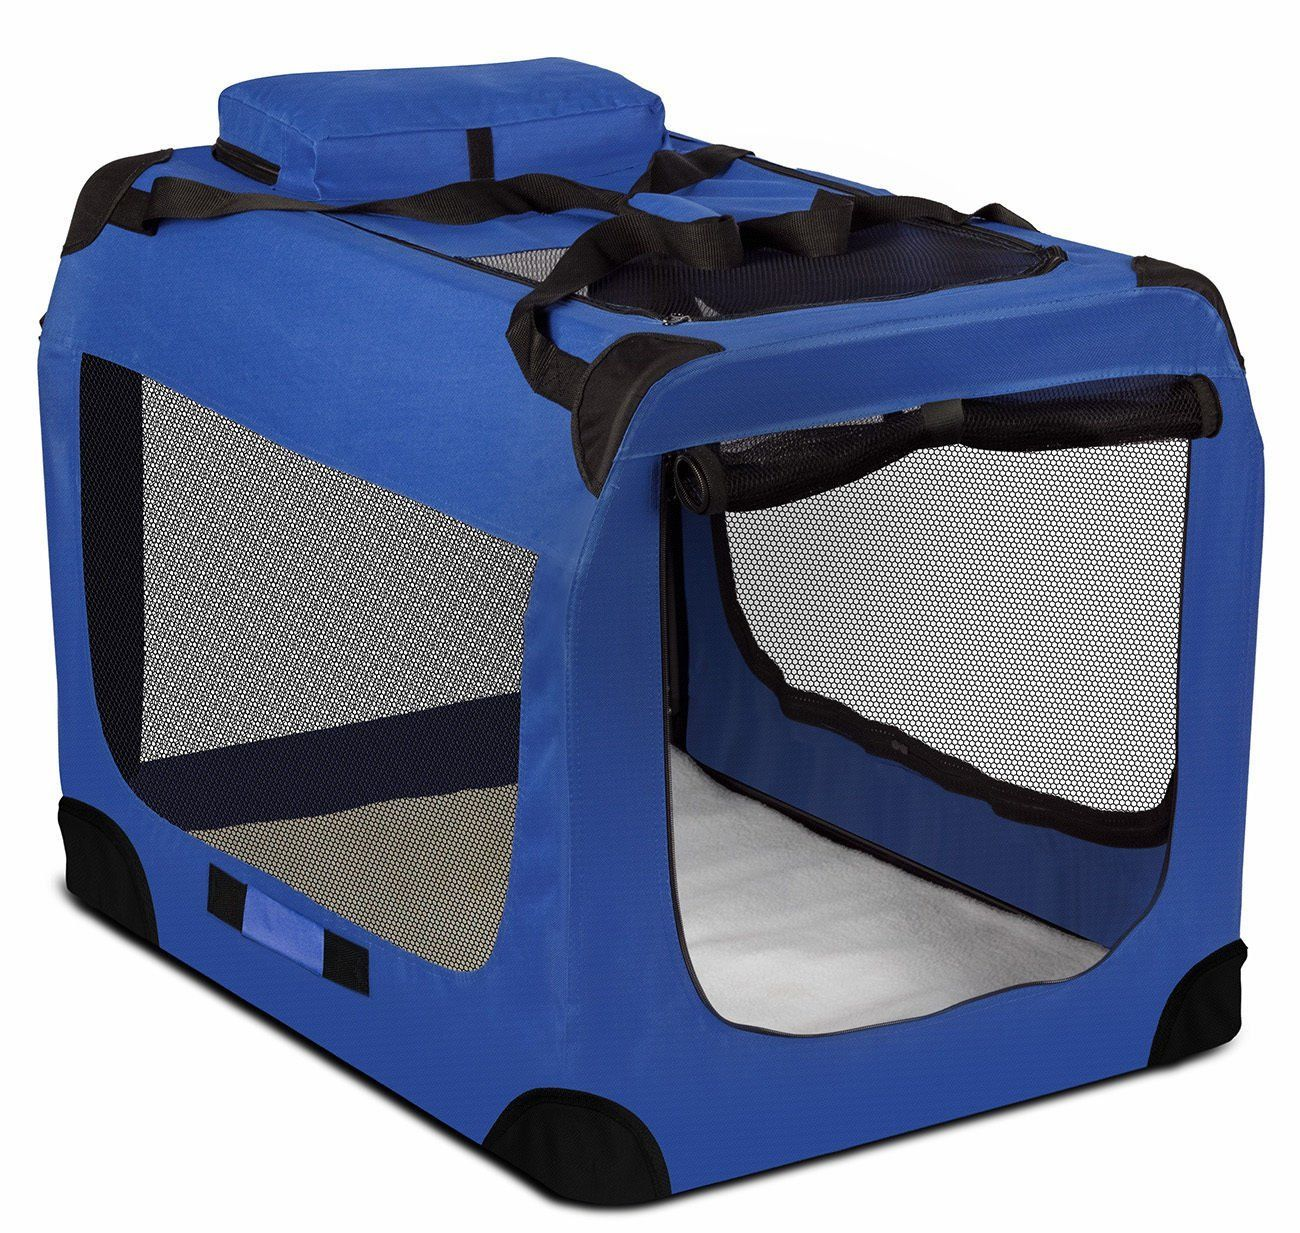 Dog Crate Soft Sided Pet Carrier Foldable Training Kennel Portable Cage House >>> New and awesome product awaits you, Read it now